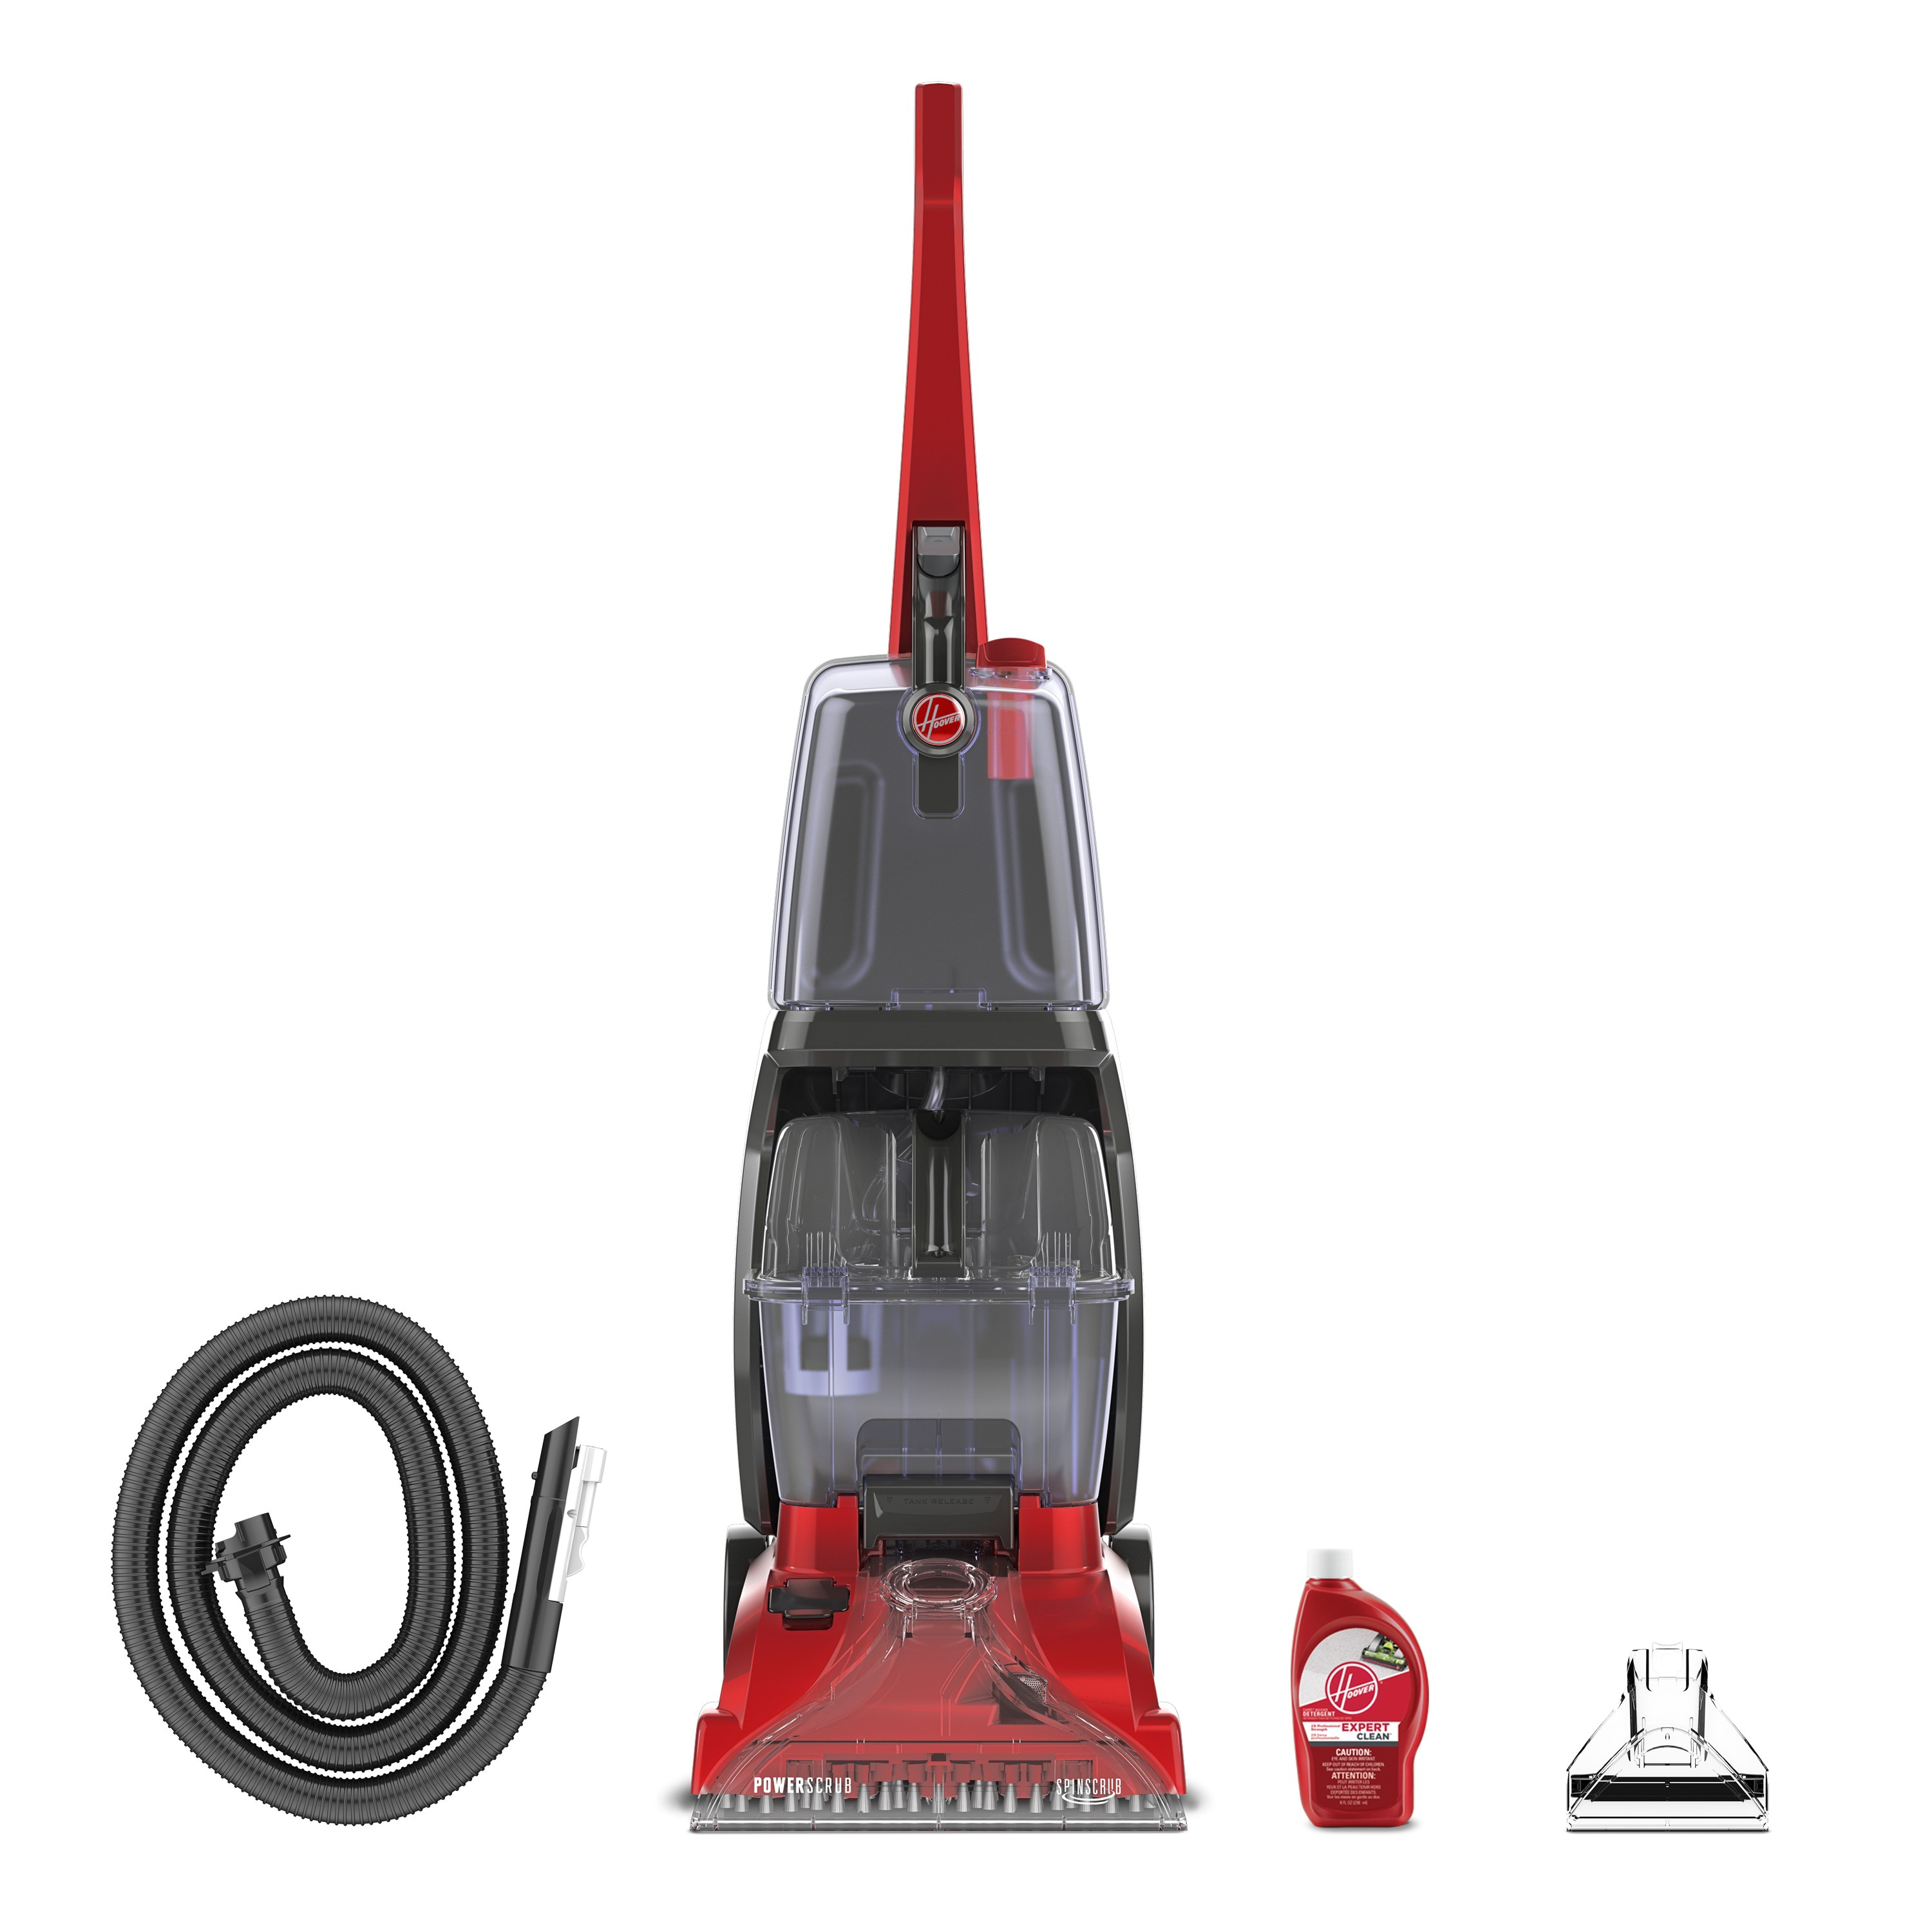 professional carpet cleaning supplies luxury hoover power scrub carpet cleaner w spinscrub technology fh of professional